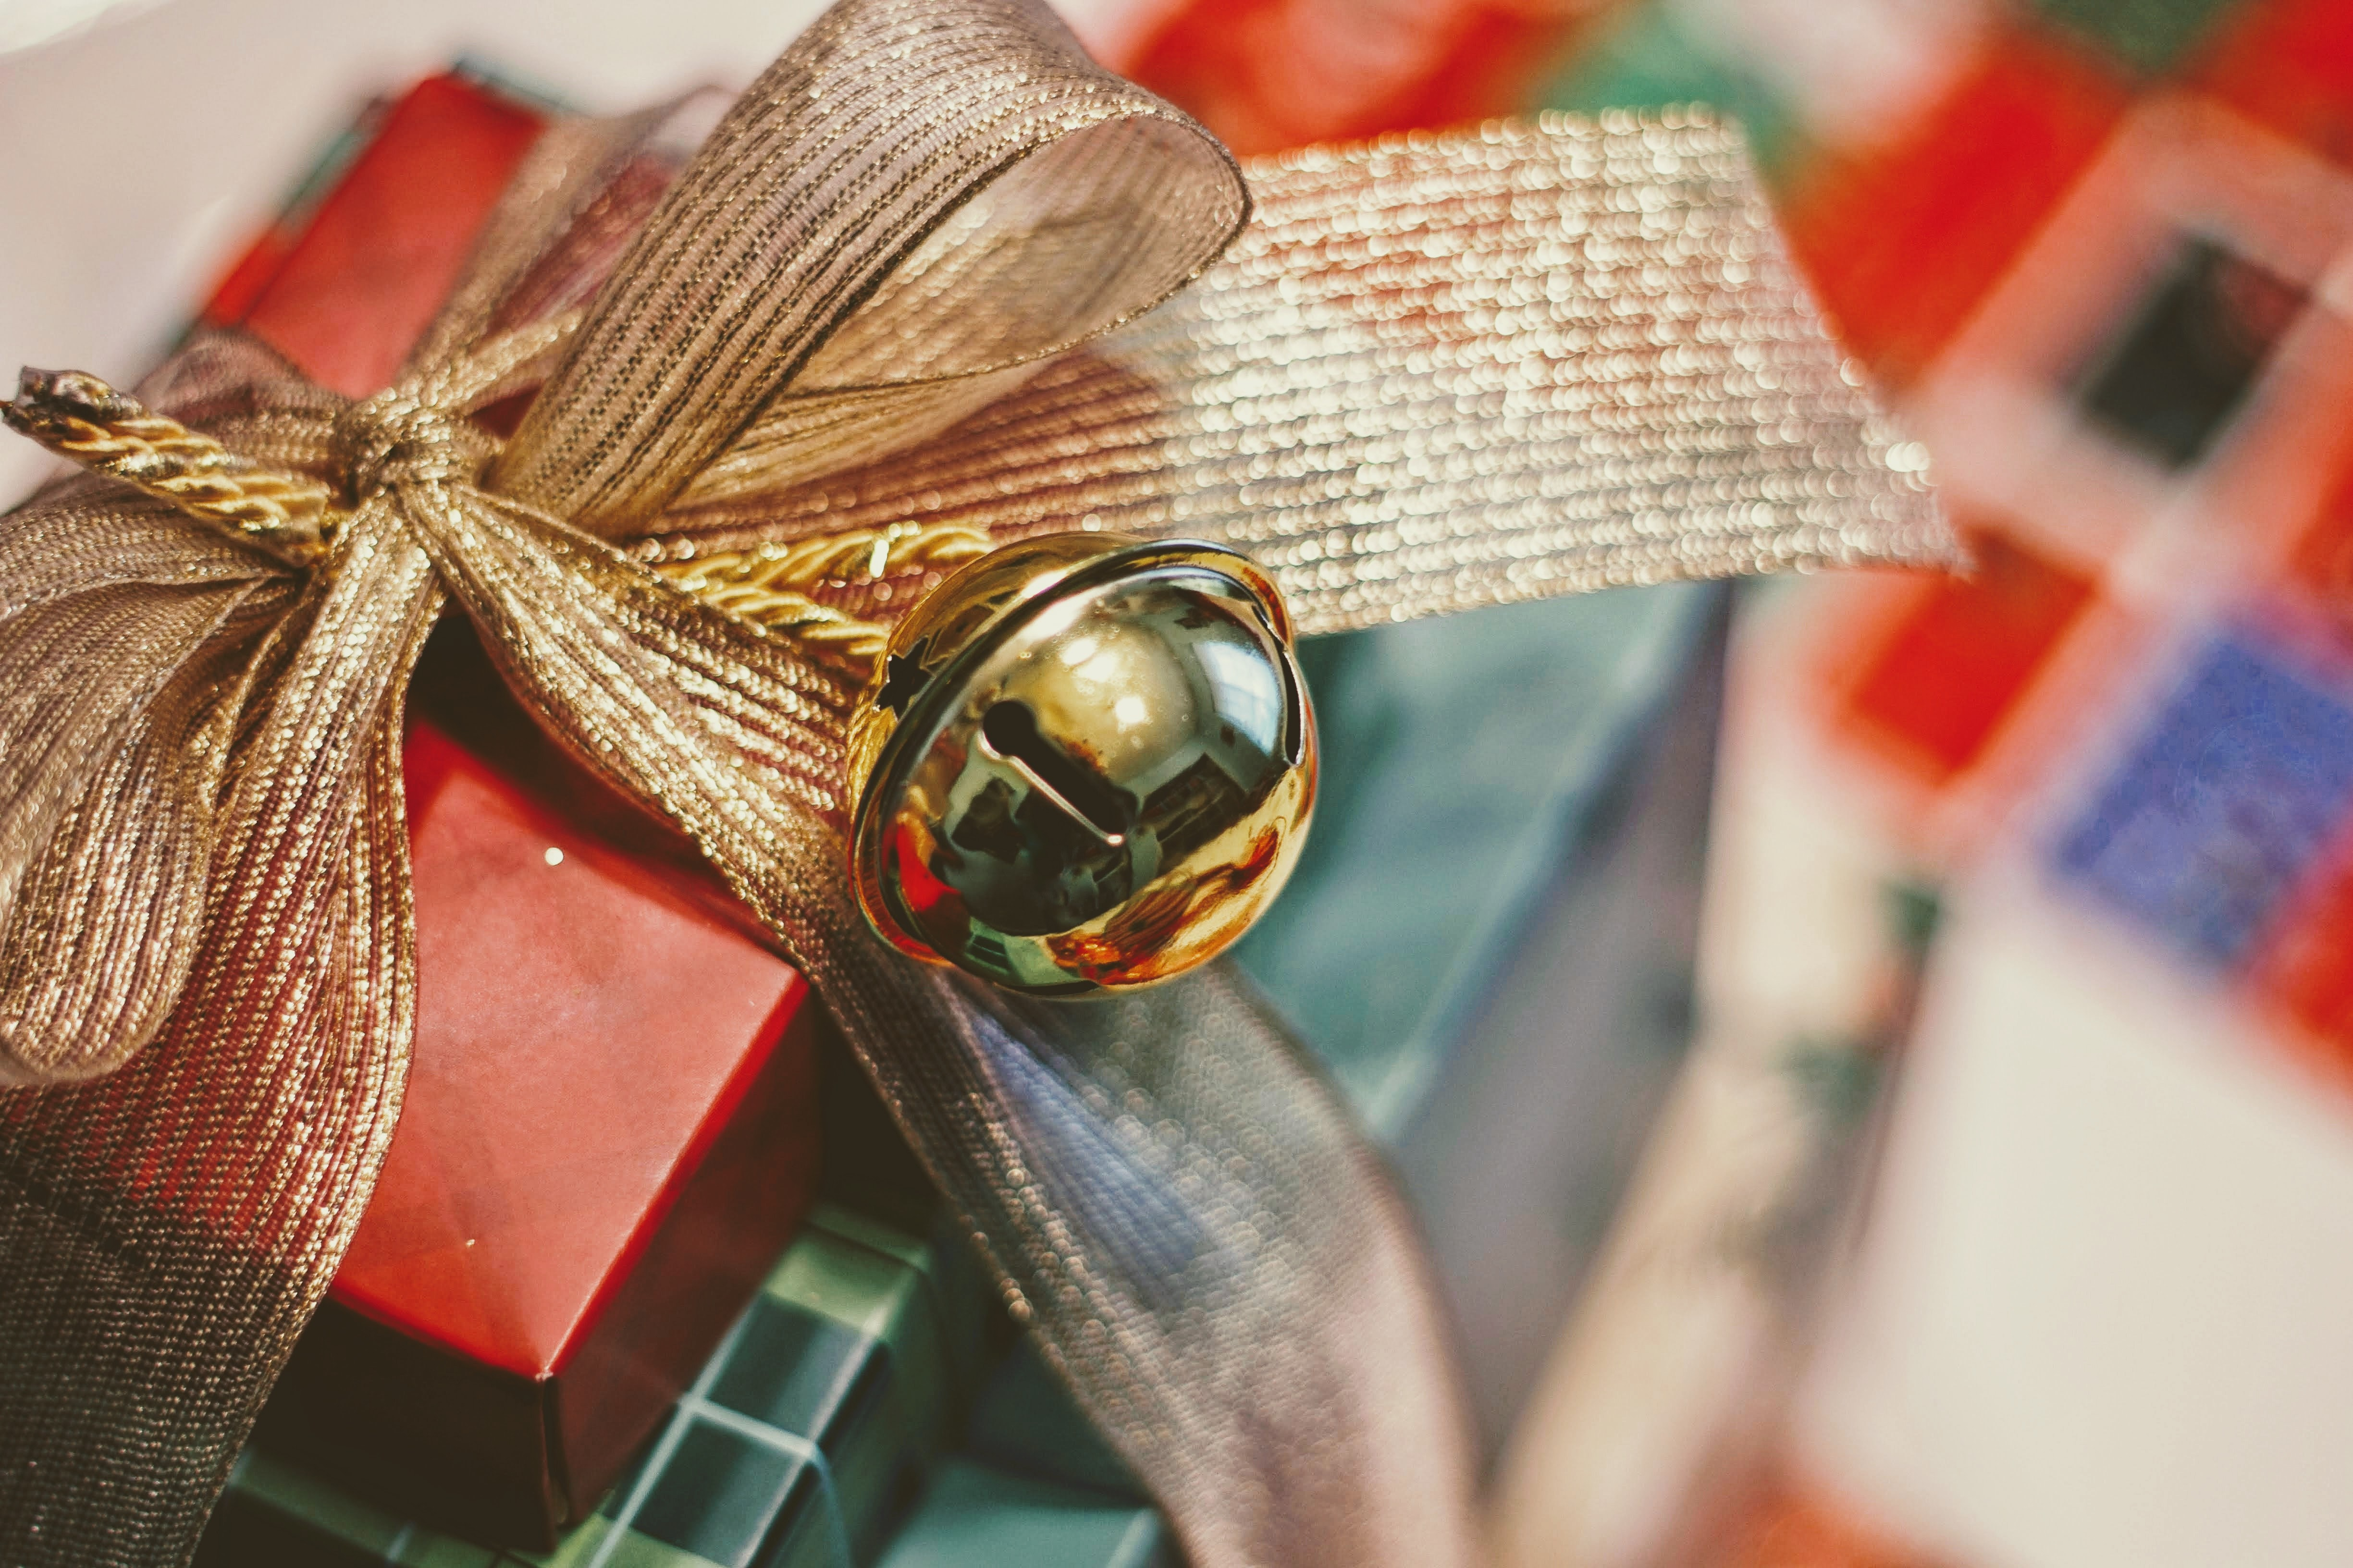 Black Friday: How to create promo codes or special offers on your gift cards and experiences - VIDEO